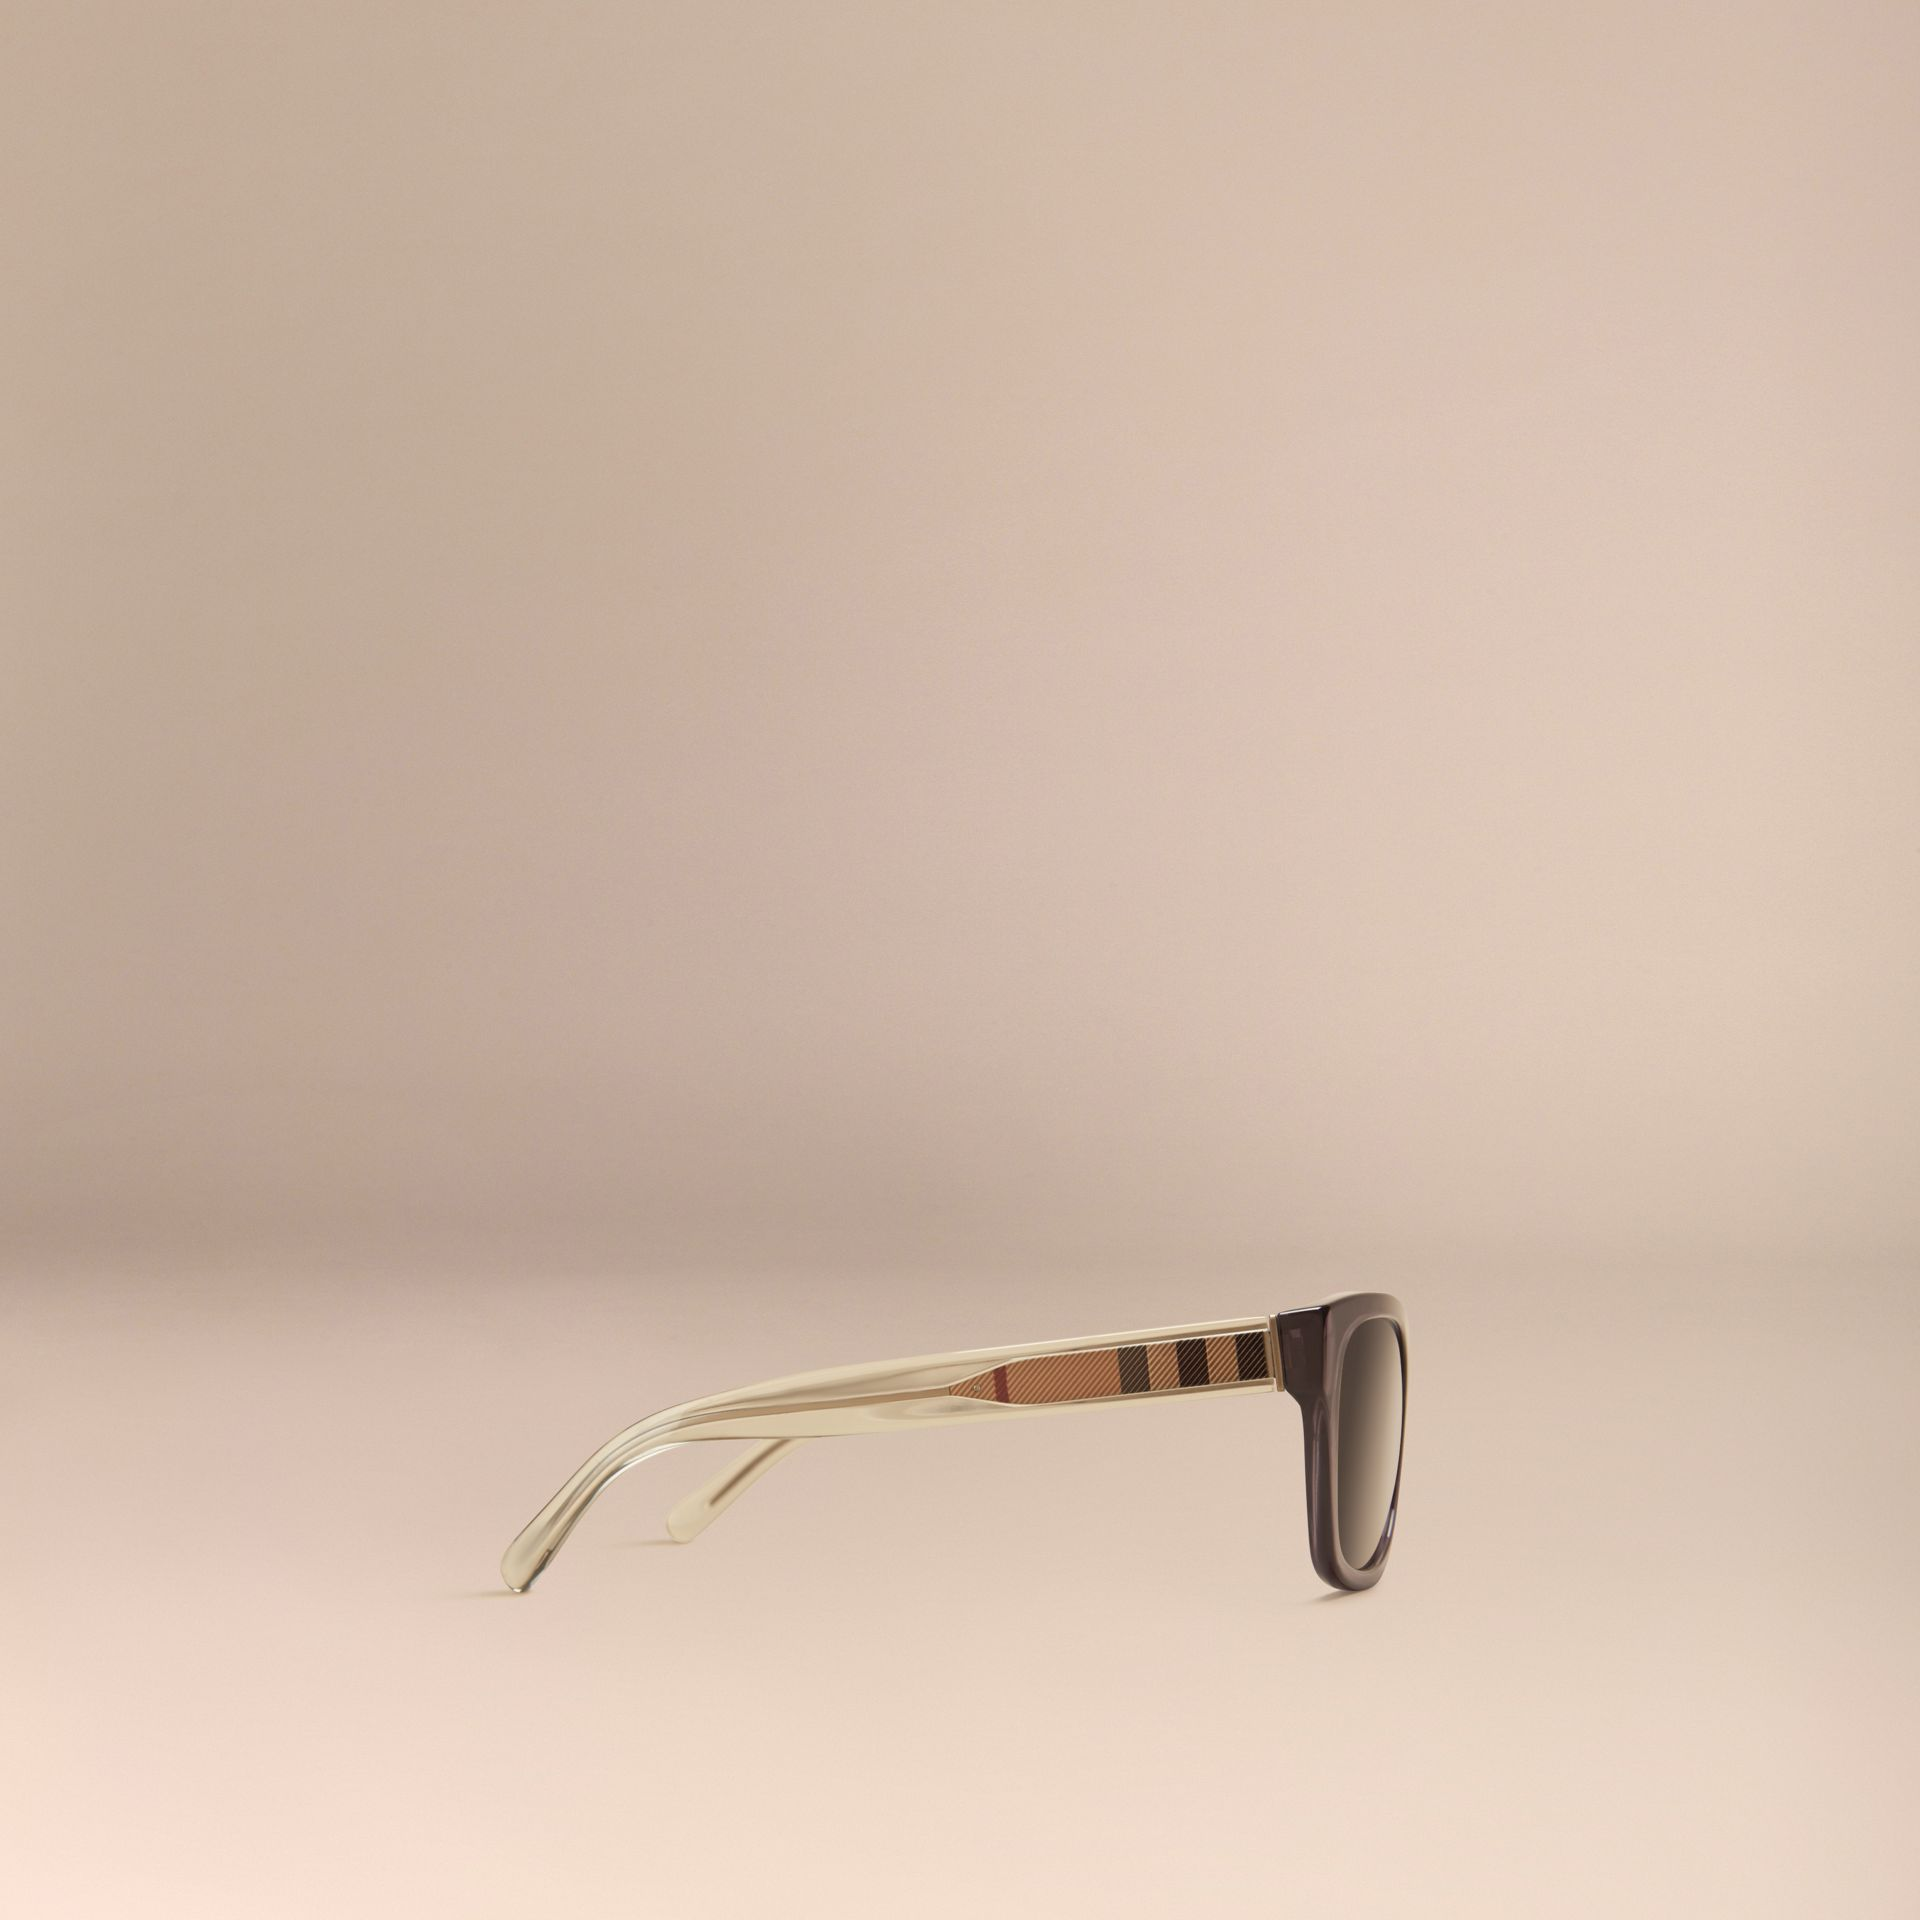 Dark grey Check Detail Square Frame Sunglasses Dark Grey - gallery image 5